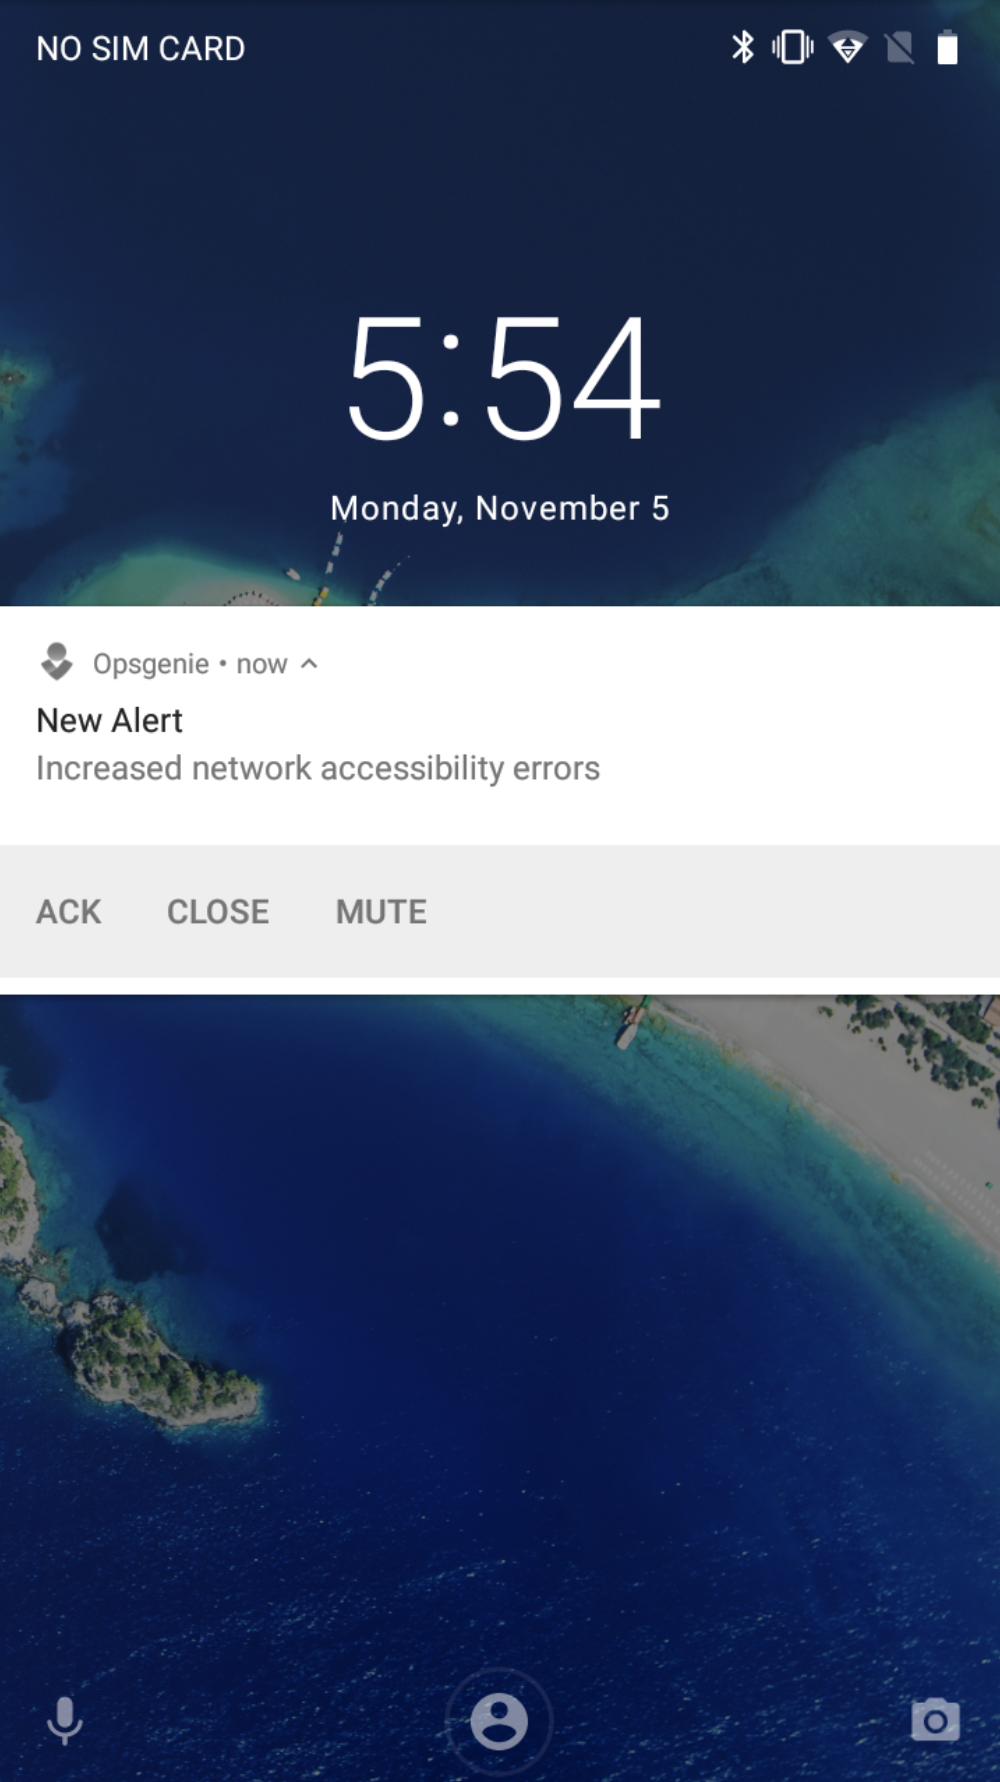 A screenshot showing how acknowledge an alert in Opsgenie's Android app.